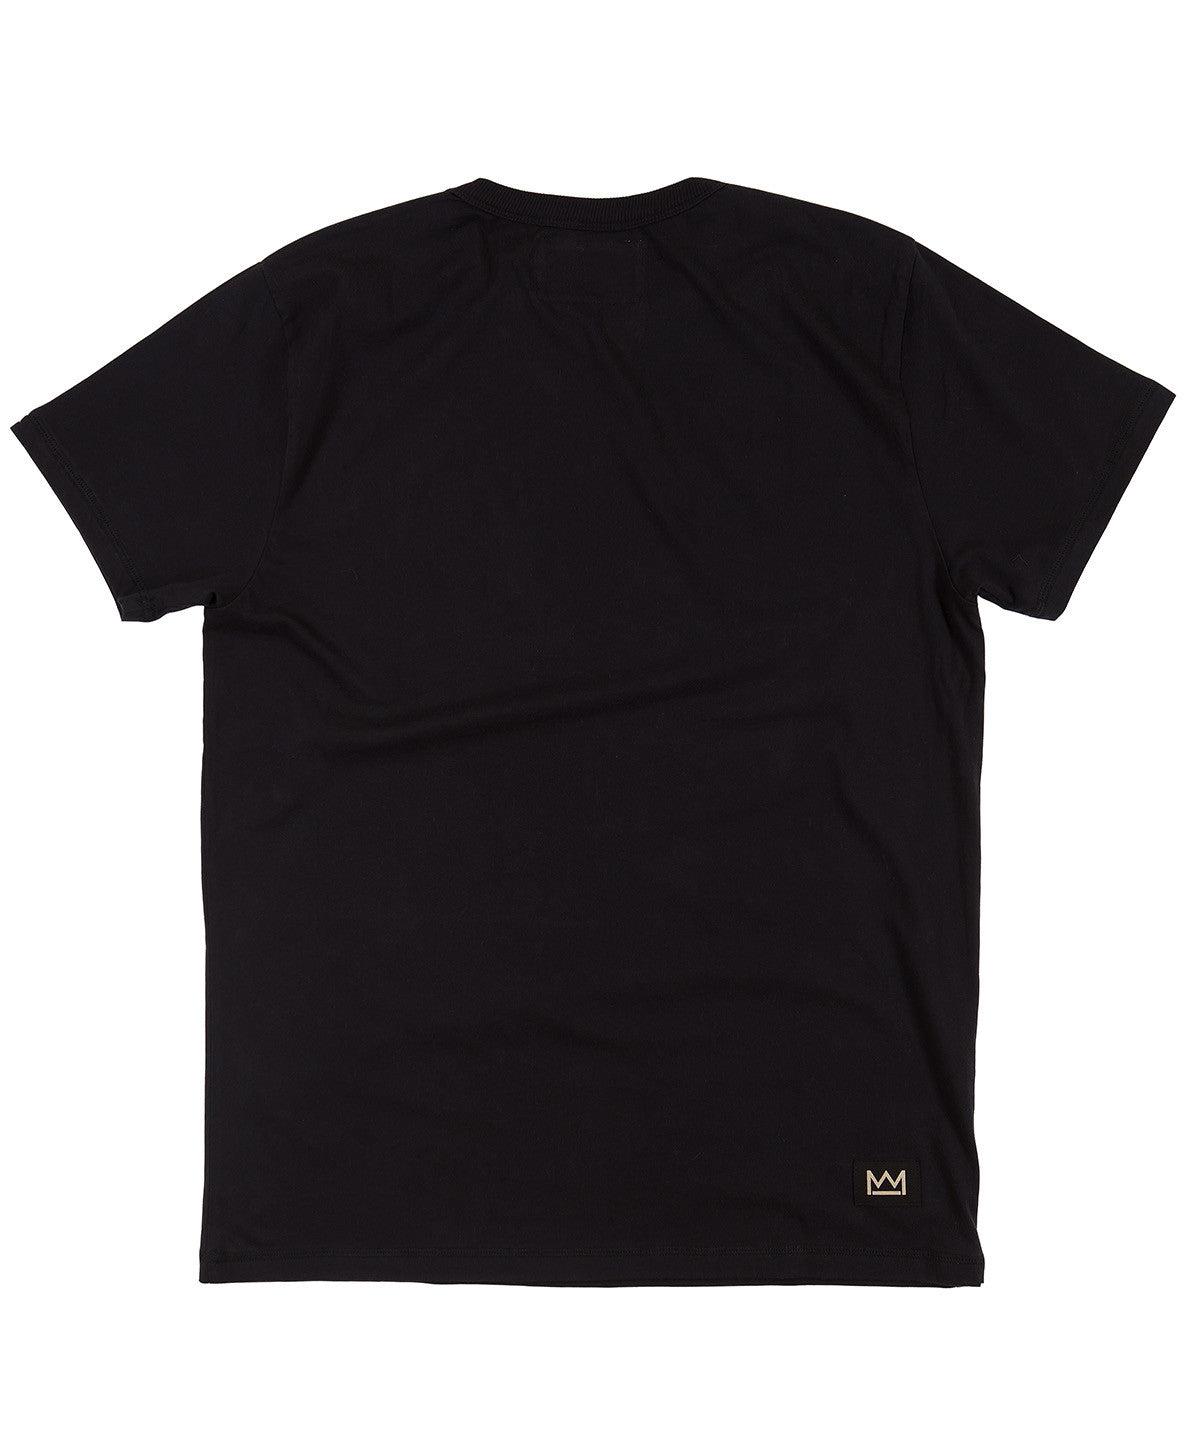 CMMNTY x Ornamental Conifer T-Shirt Black